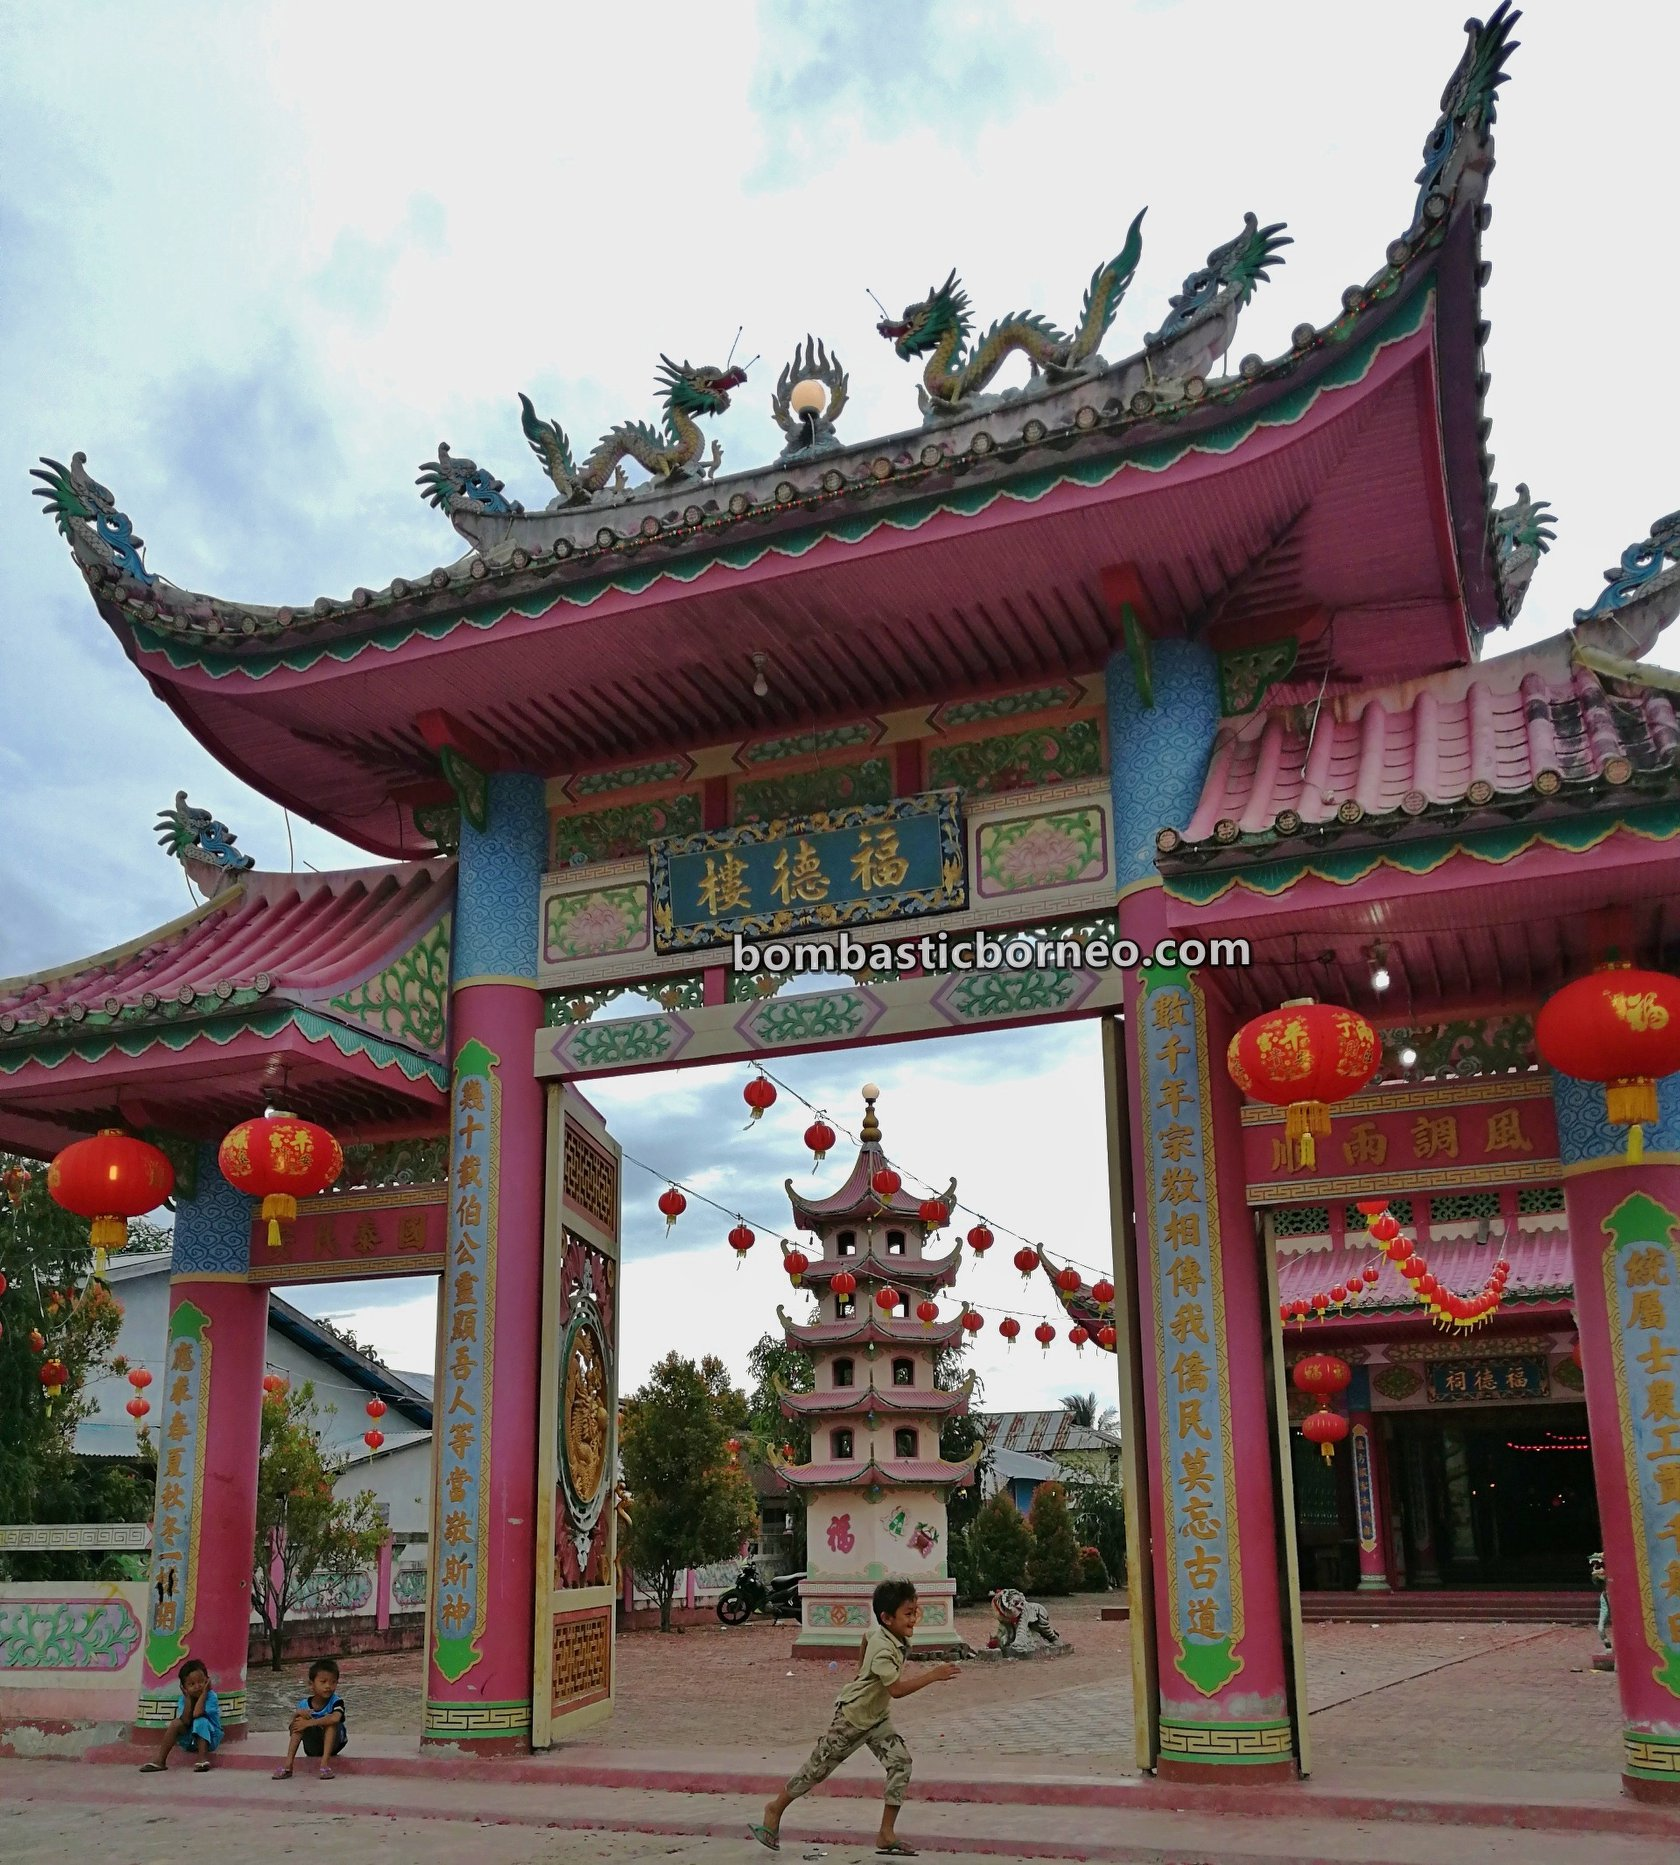 temple, Tahun Baru Imlek, Chinese New Year, Indonesia, Tourism, travel guide, backpackers, Trans Border, Borneo, 穿越婆罗洲游踪, 印尼西加里曼丹, 三发三条港华侨